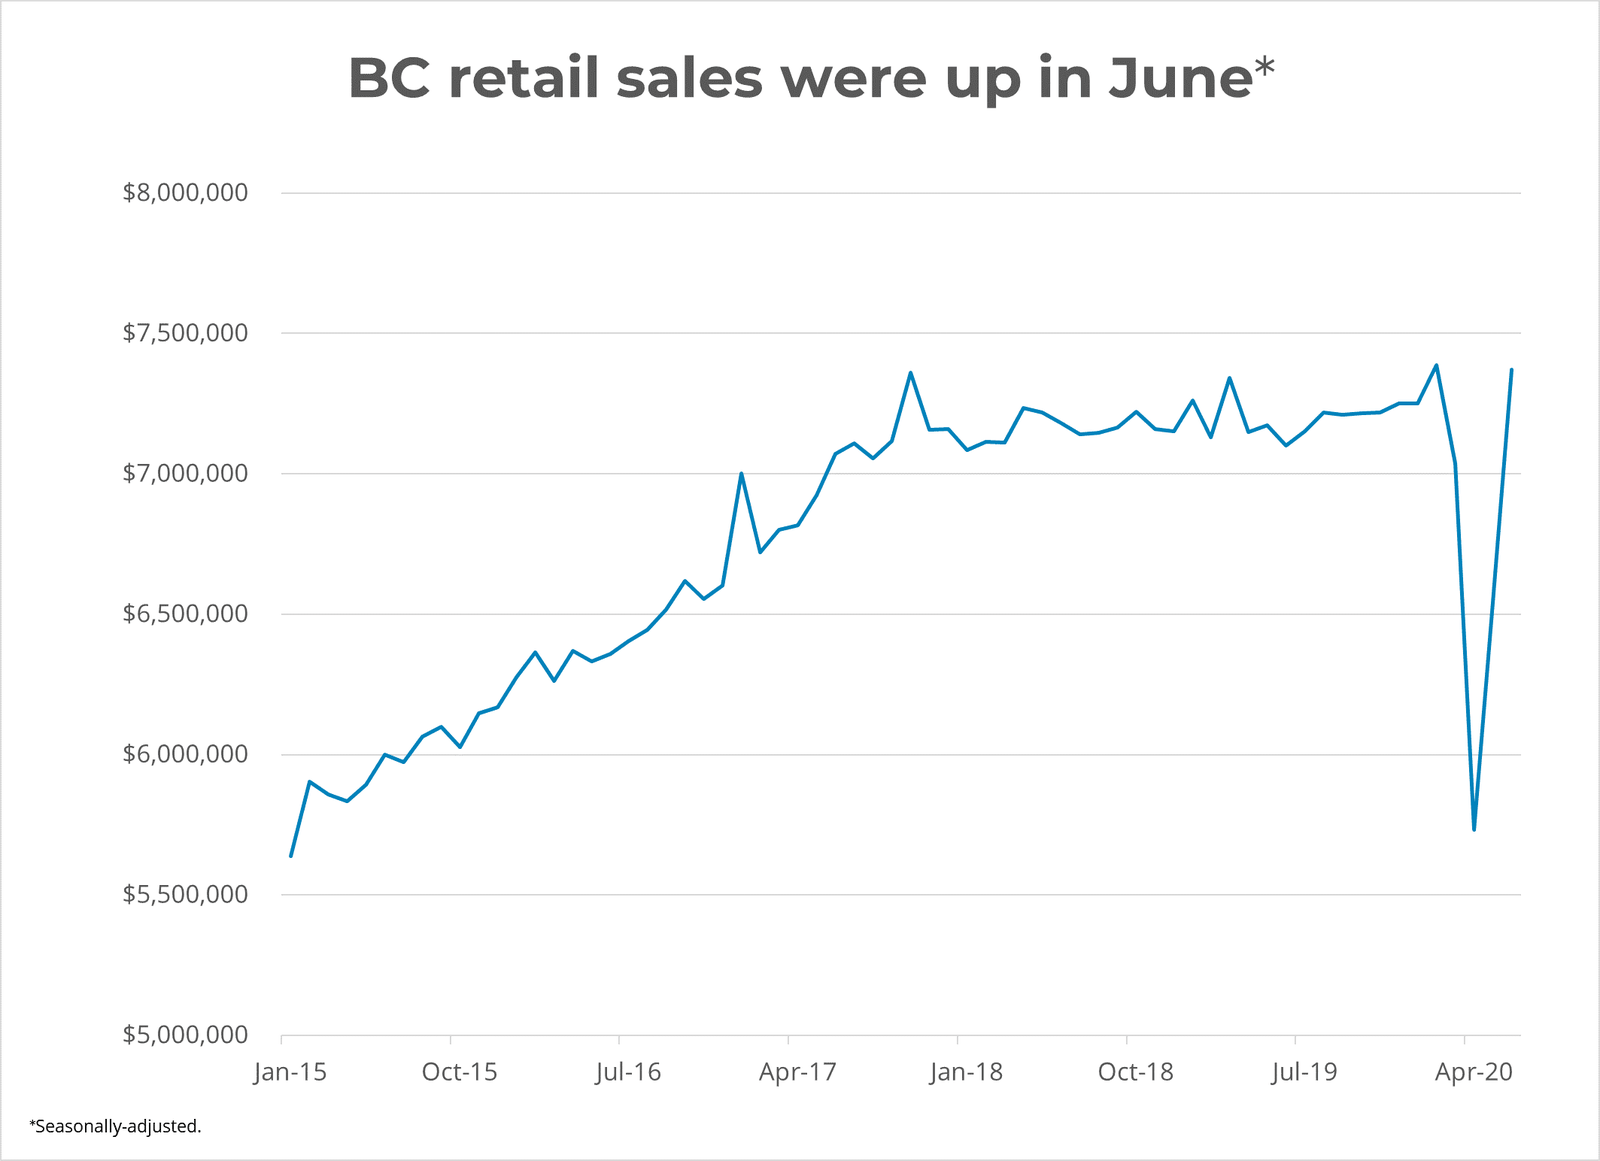 BC Retail sales up in June 2020